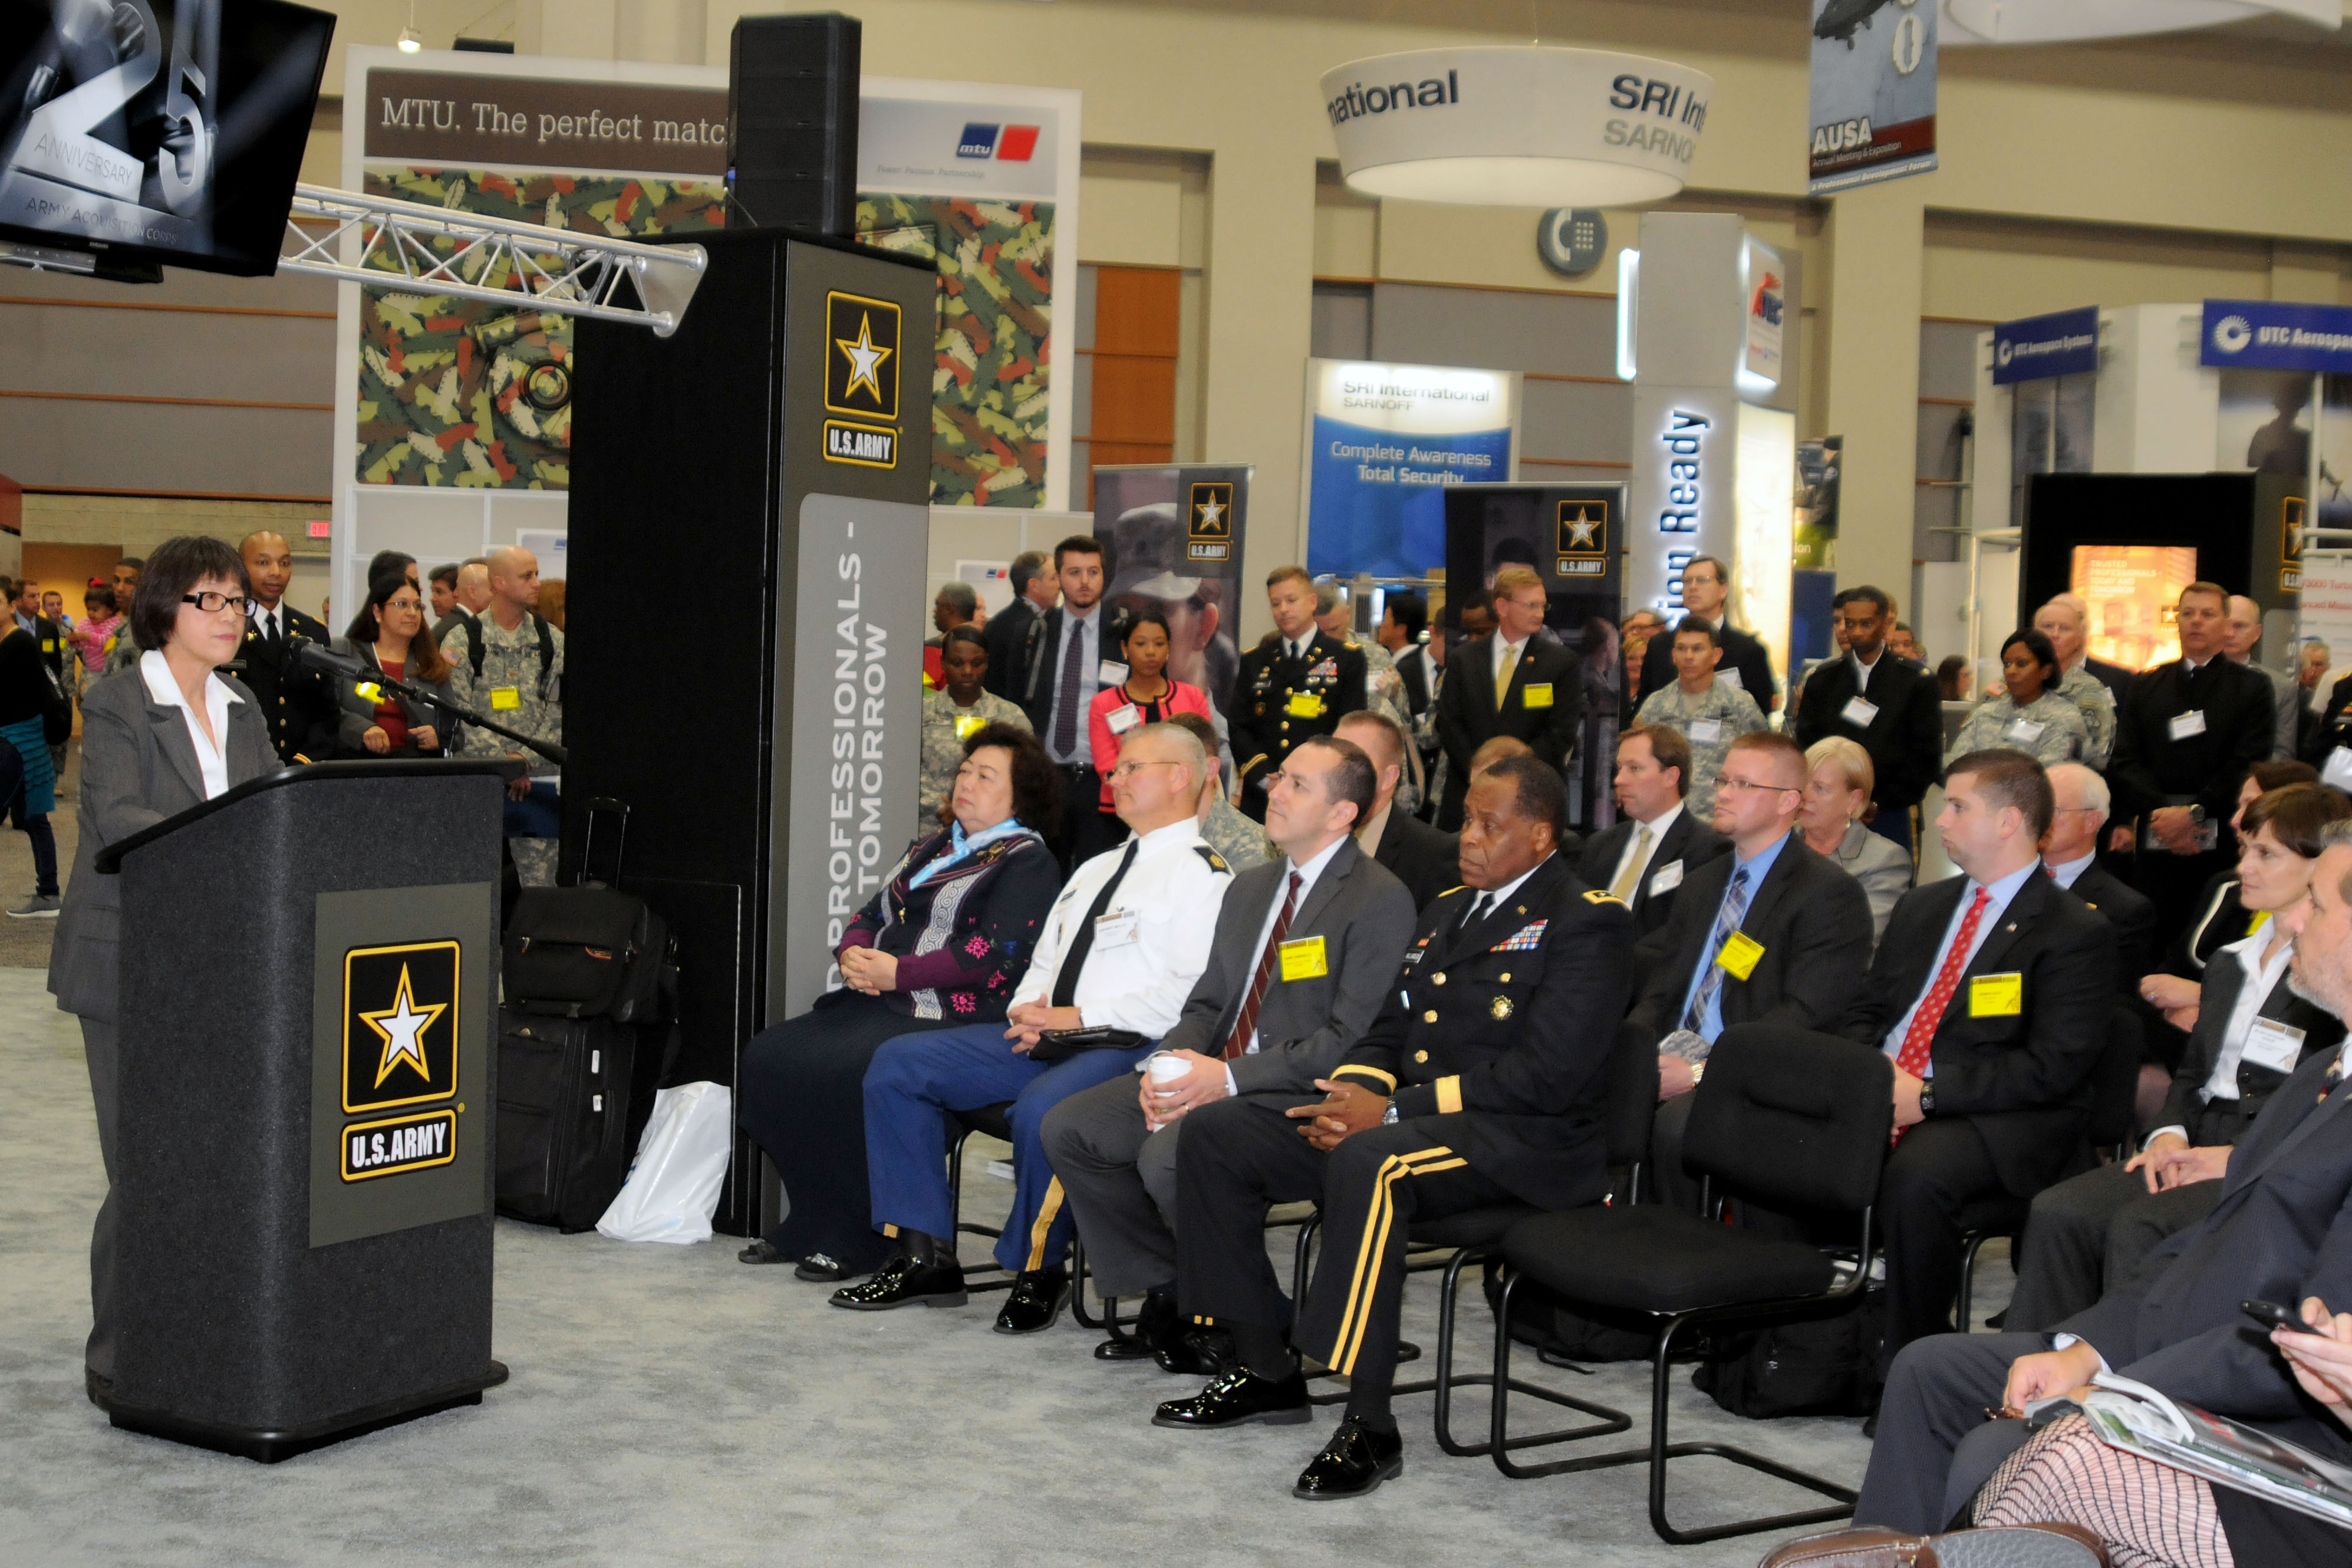 The Hon. Heidi Shyu, the Army acquisition executive, welcomes guests at the AAC silver anniversary celebration at the AUSA annual meeting, Oct. 13.